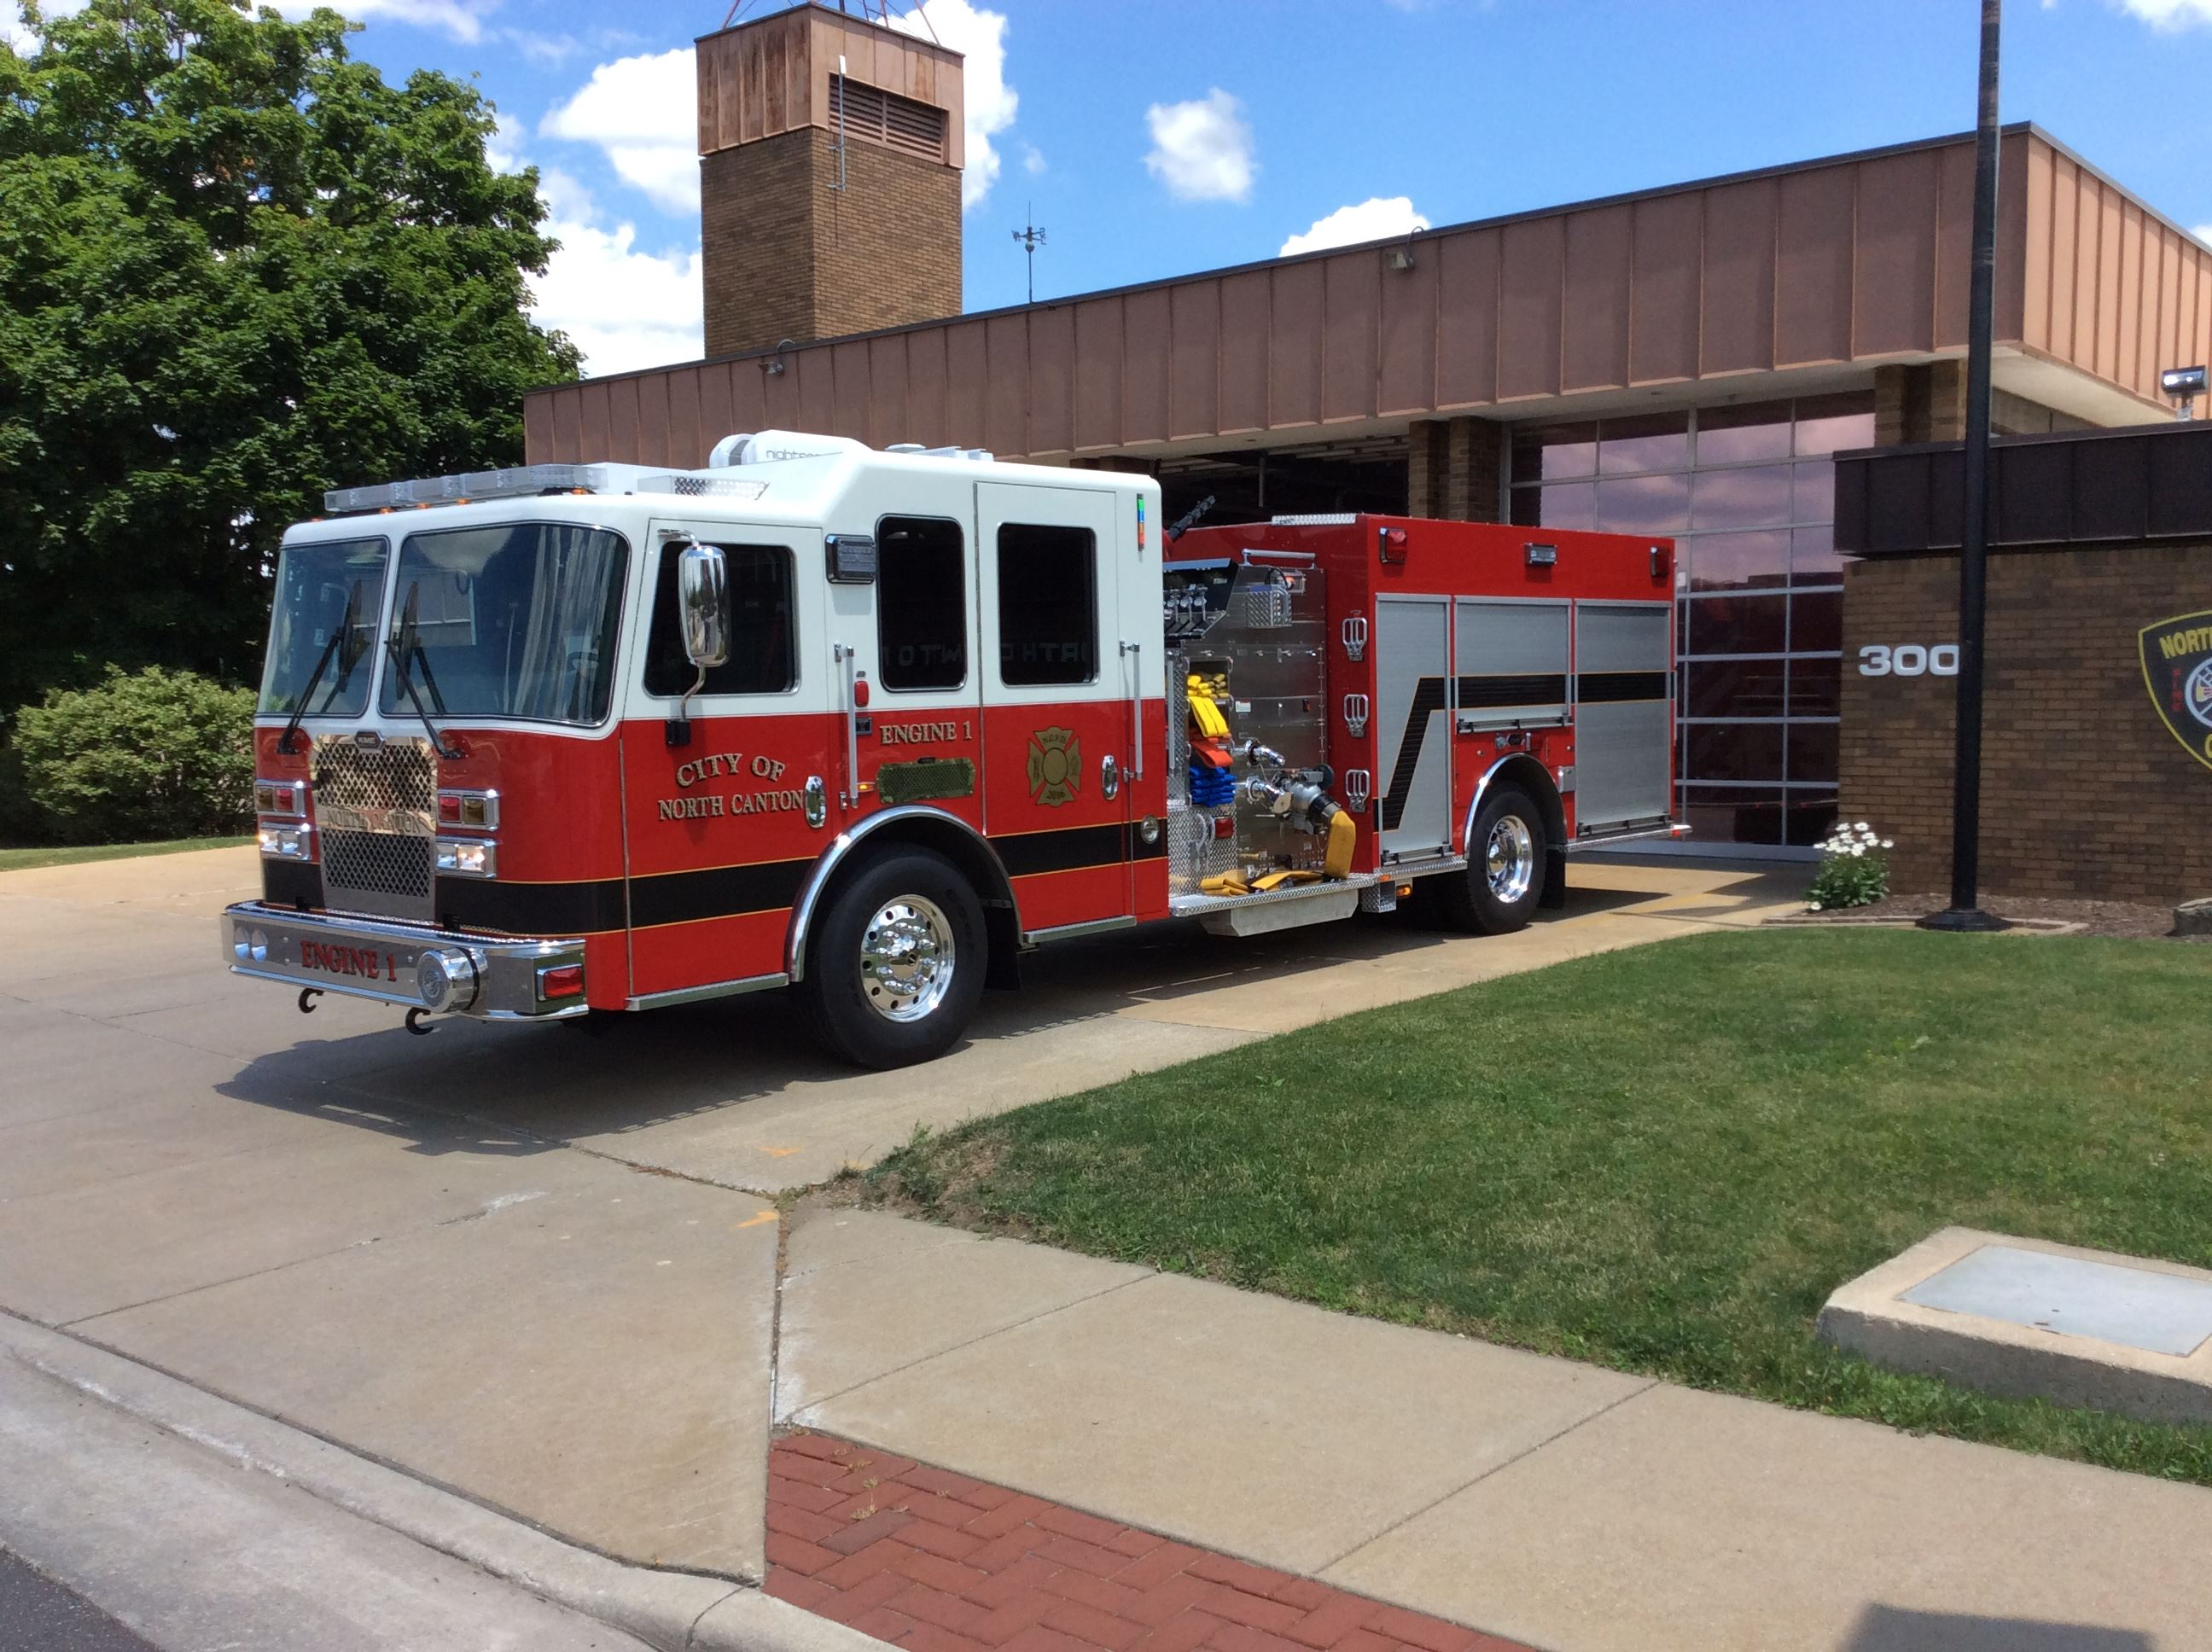 Engine 1 2016 KME Predator Panther 1500 GPM Pump